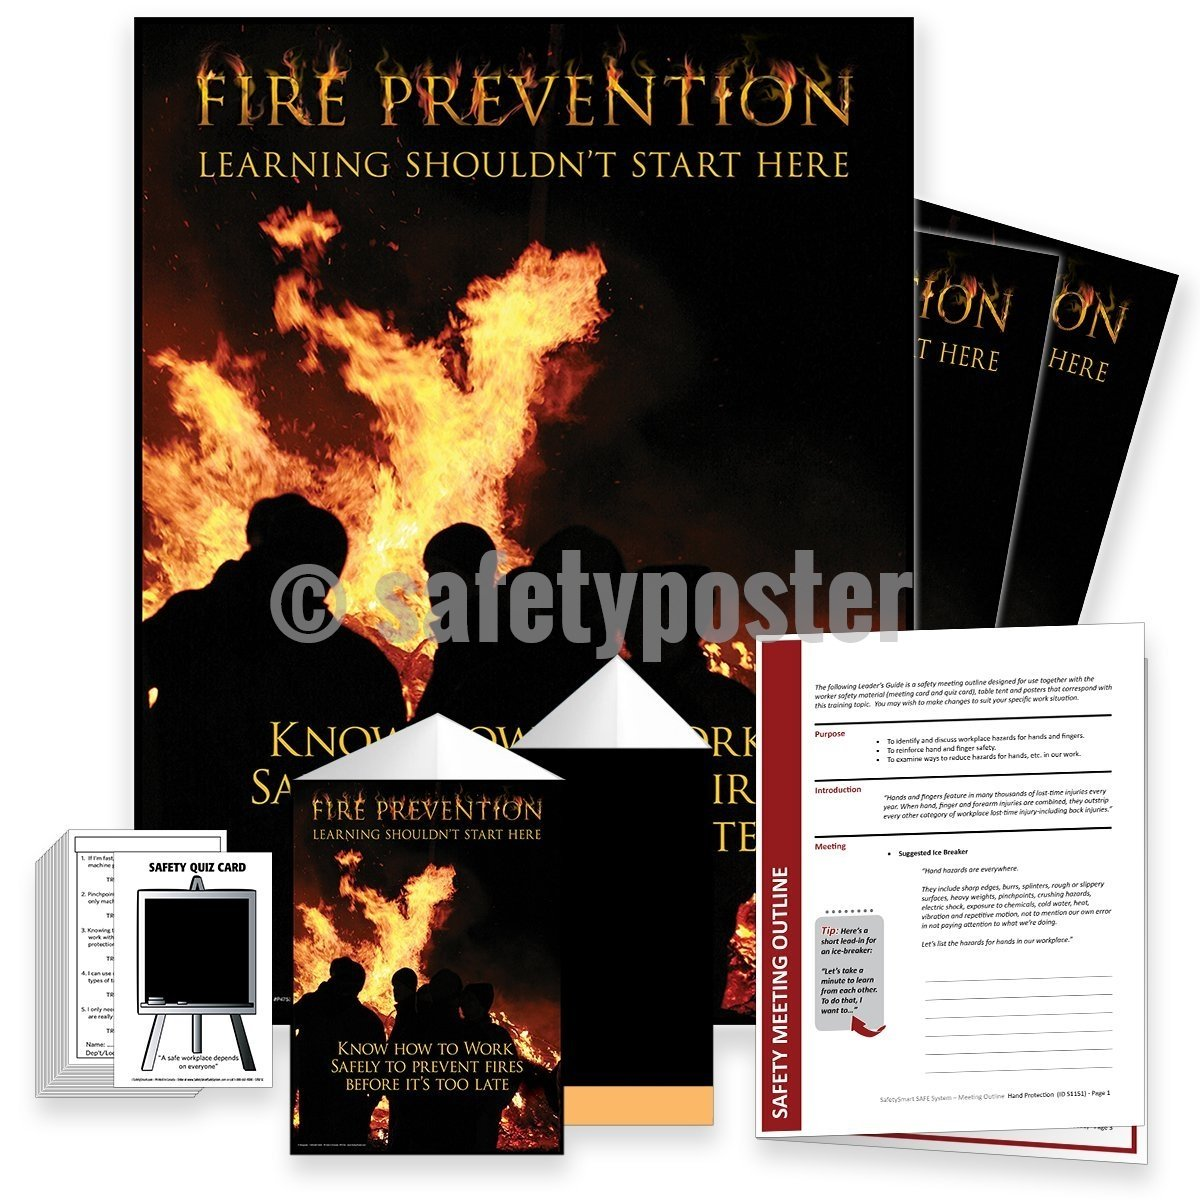 Safety Meeting Kit - Fire Prevention Learning Shouldnt Start Here Kits